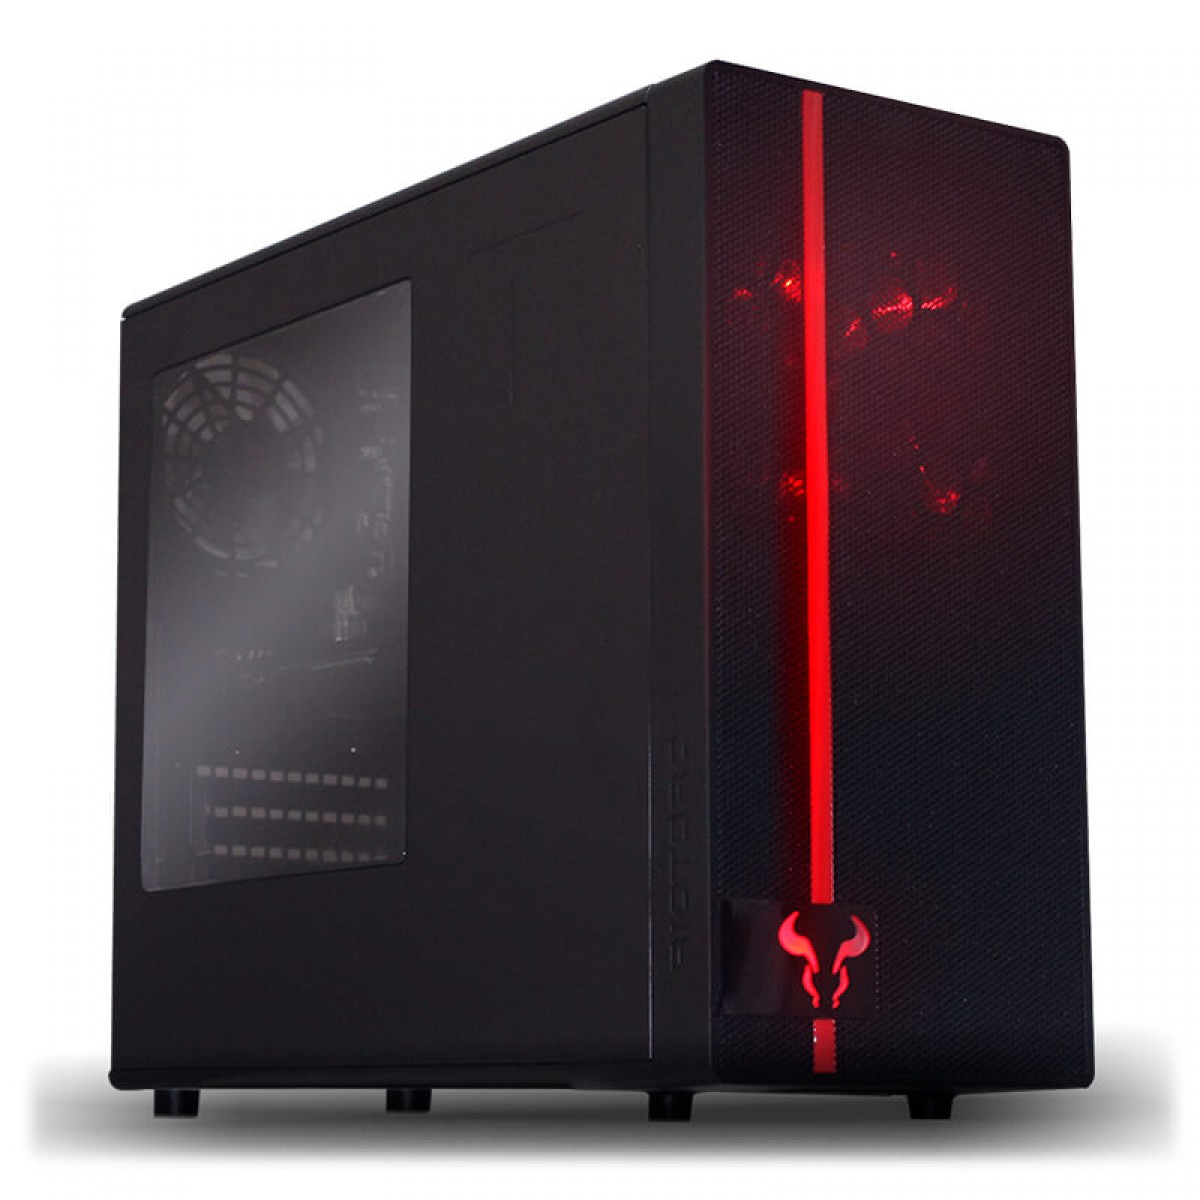 Pc Gamer T-Power Insane Lvl-2 Intel I7 8700k / Geforce RTX 2070 8GB / DDR4 16GB / HD 1TB / 600W